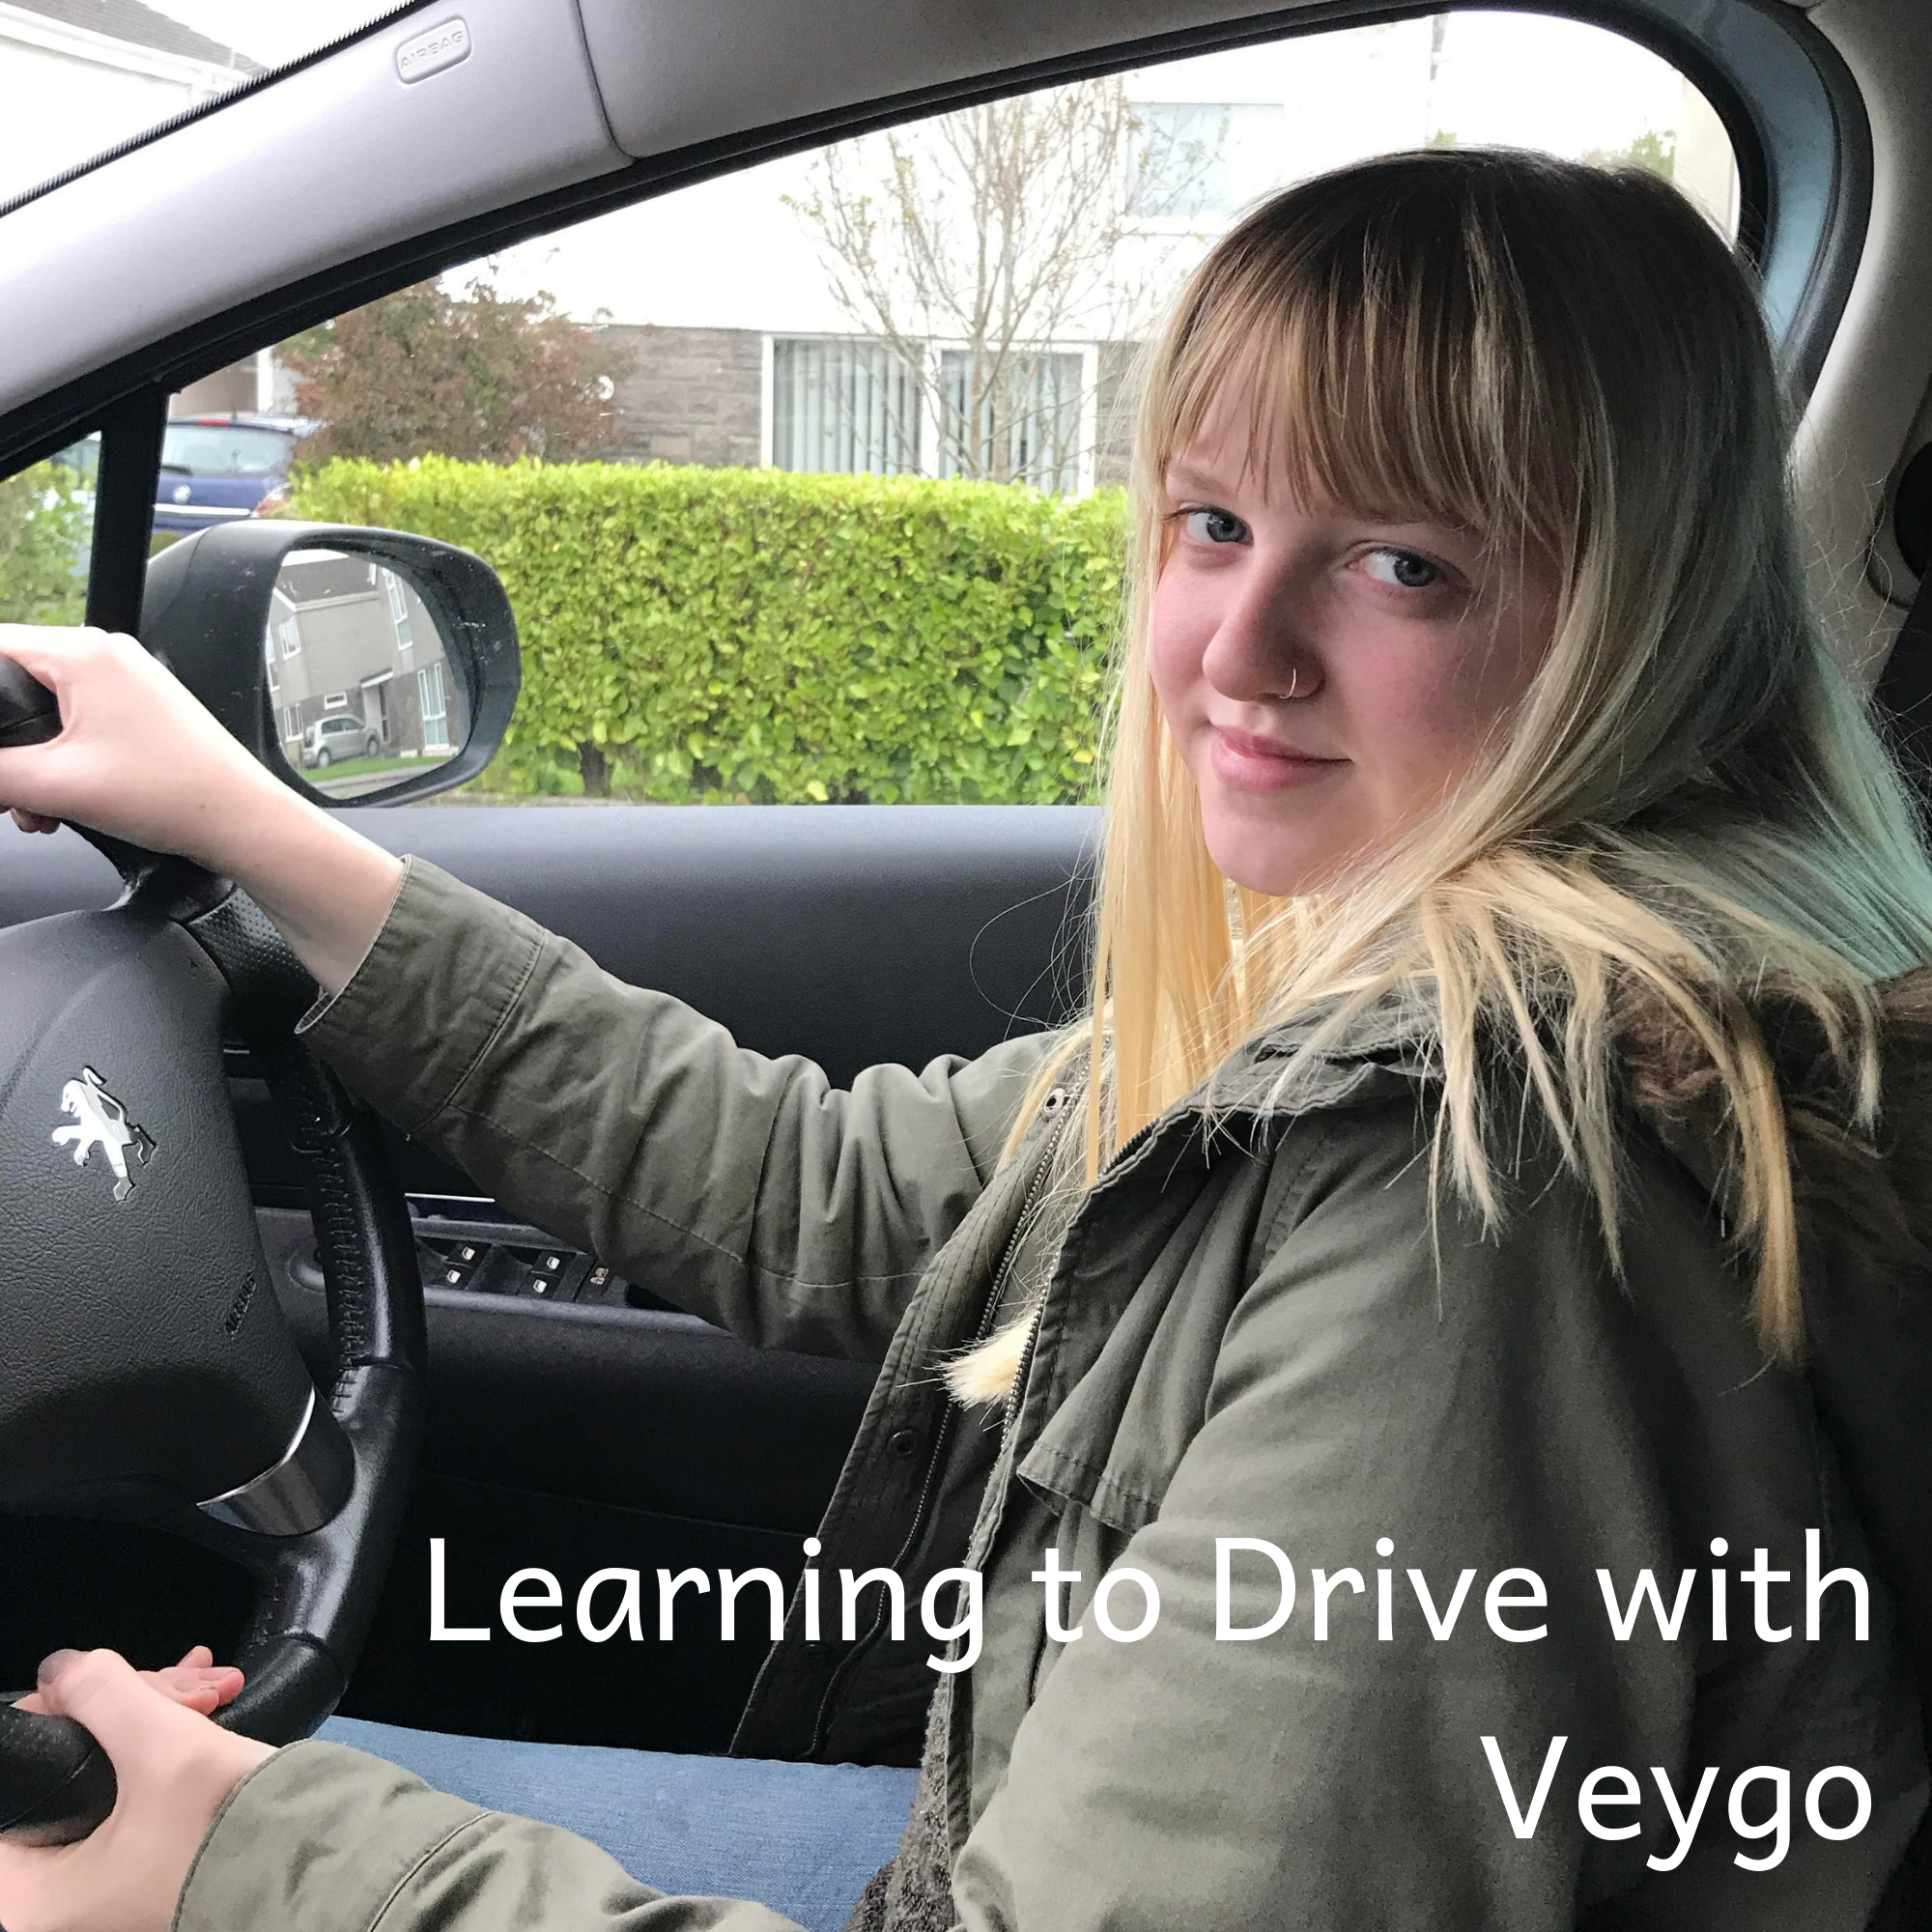 Learning to Drive with Veygo